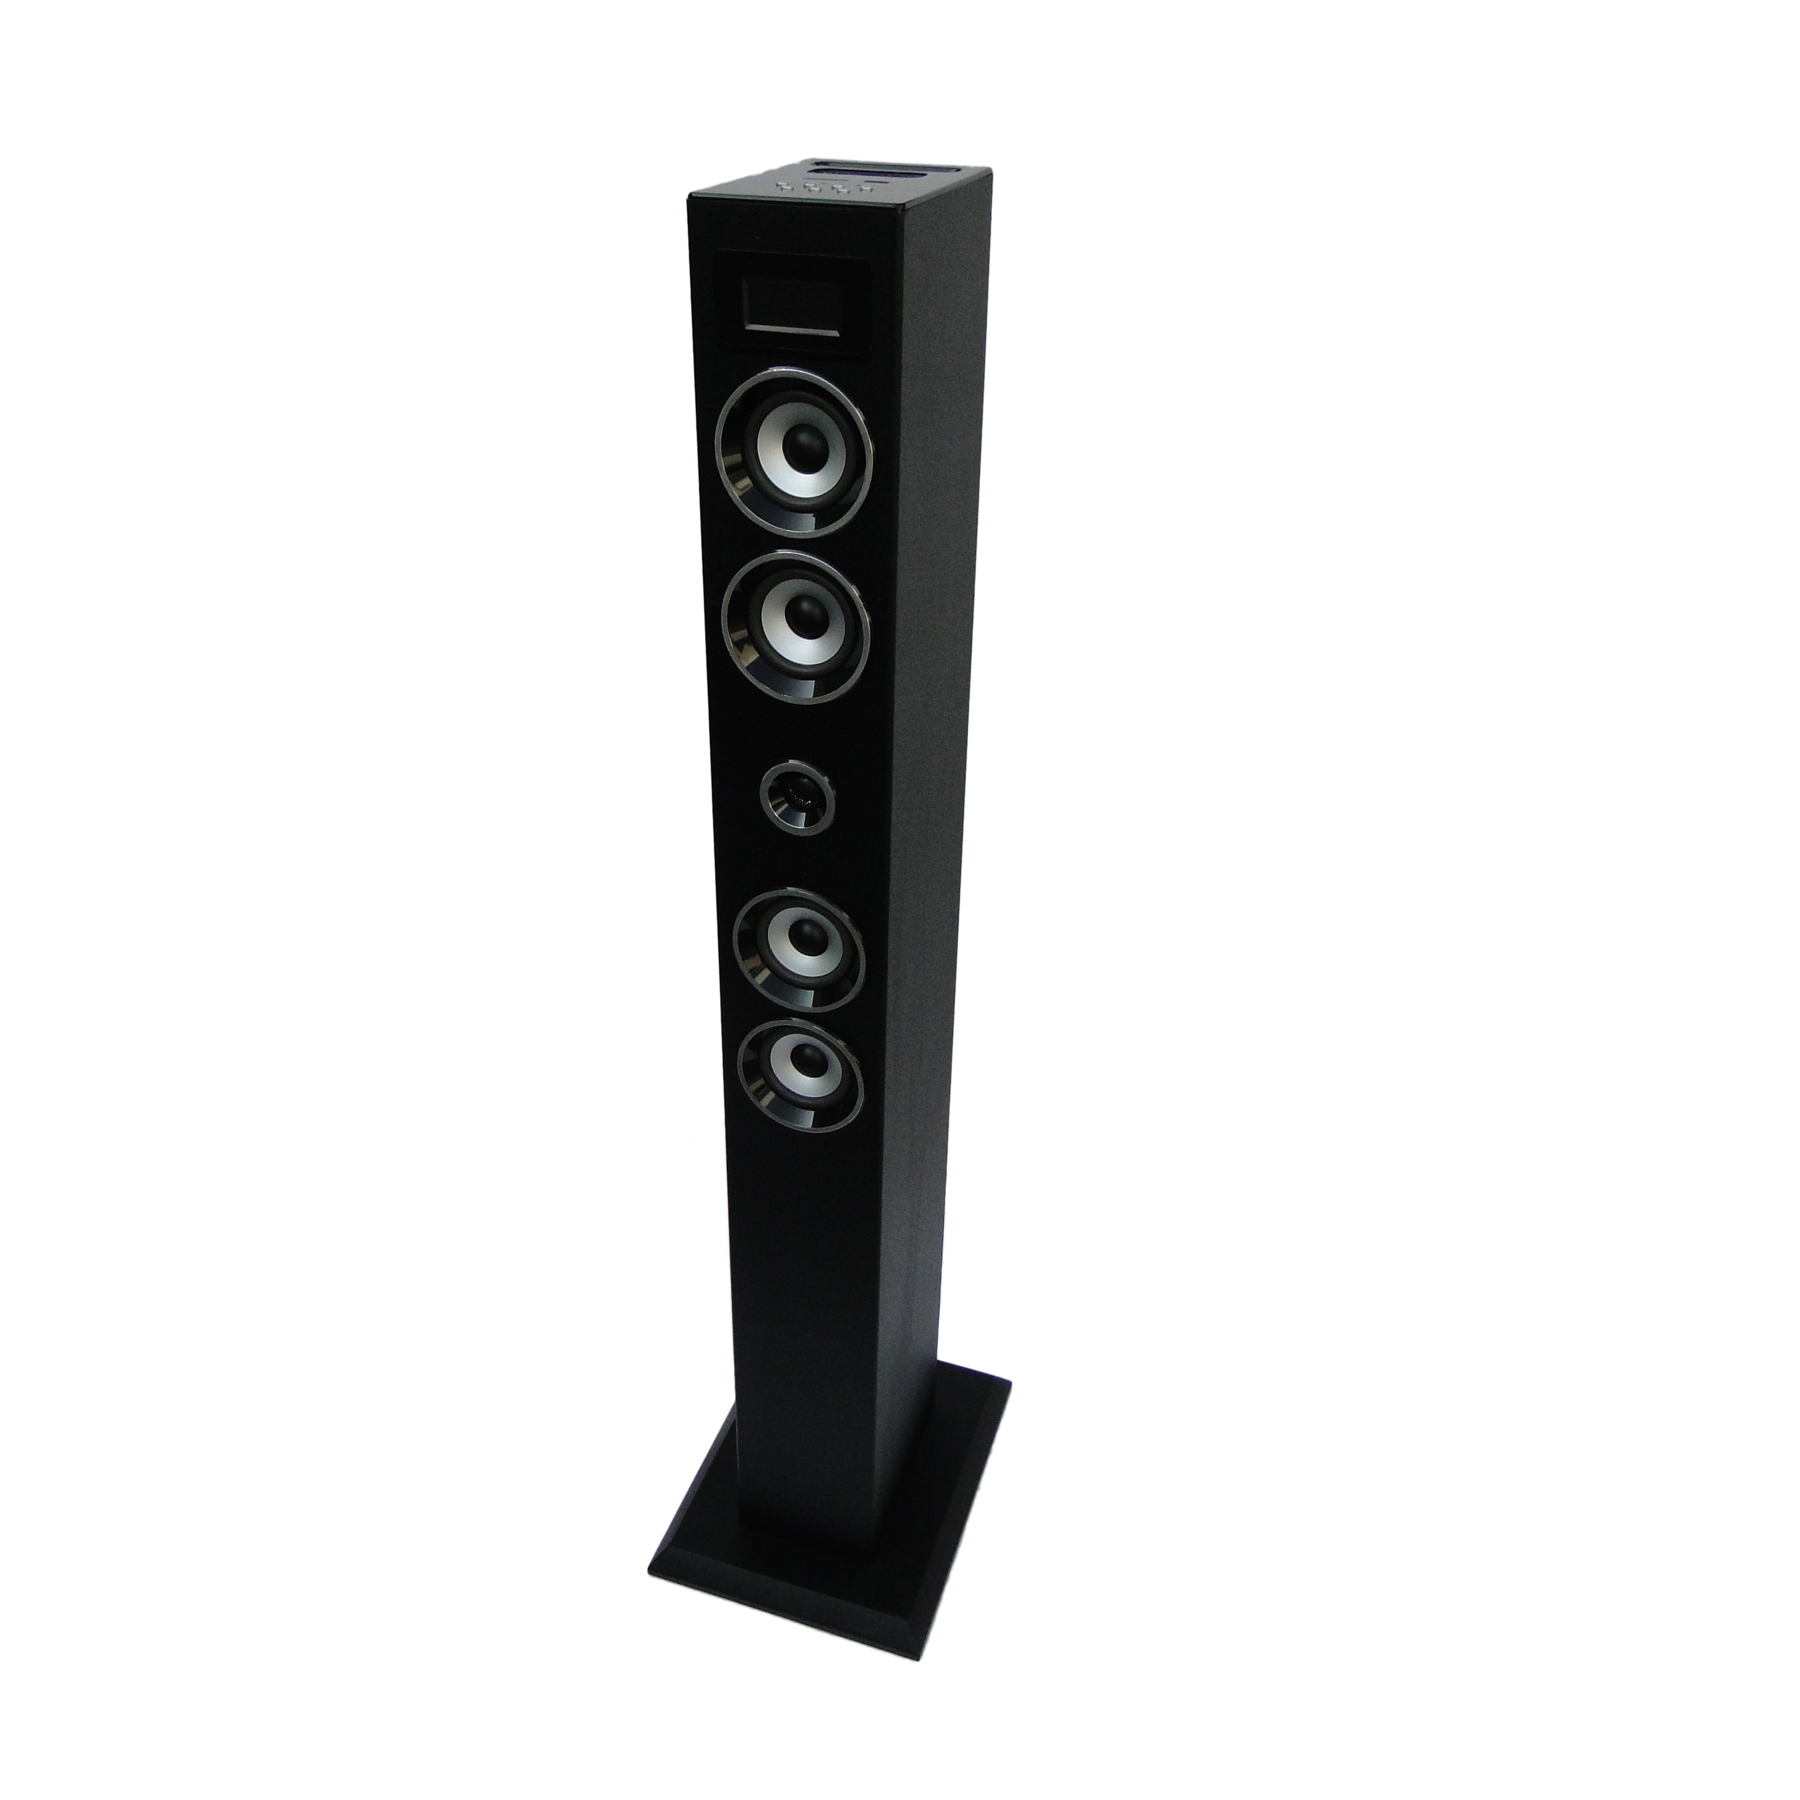 soundvision sv t04 bt noir dock enceinte bluetooth soundvision sur ldlc. Black Bedroom Furniture Sets. Home Design Ideas